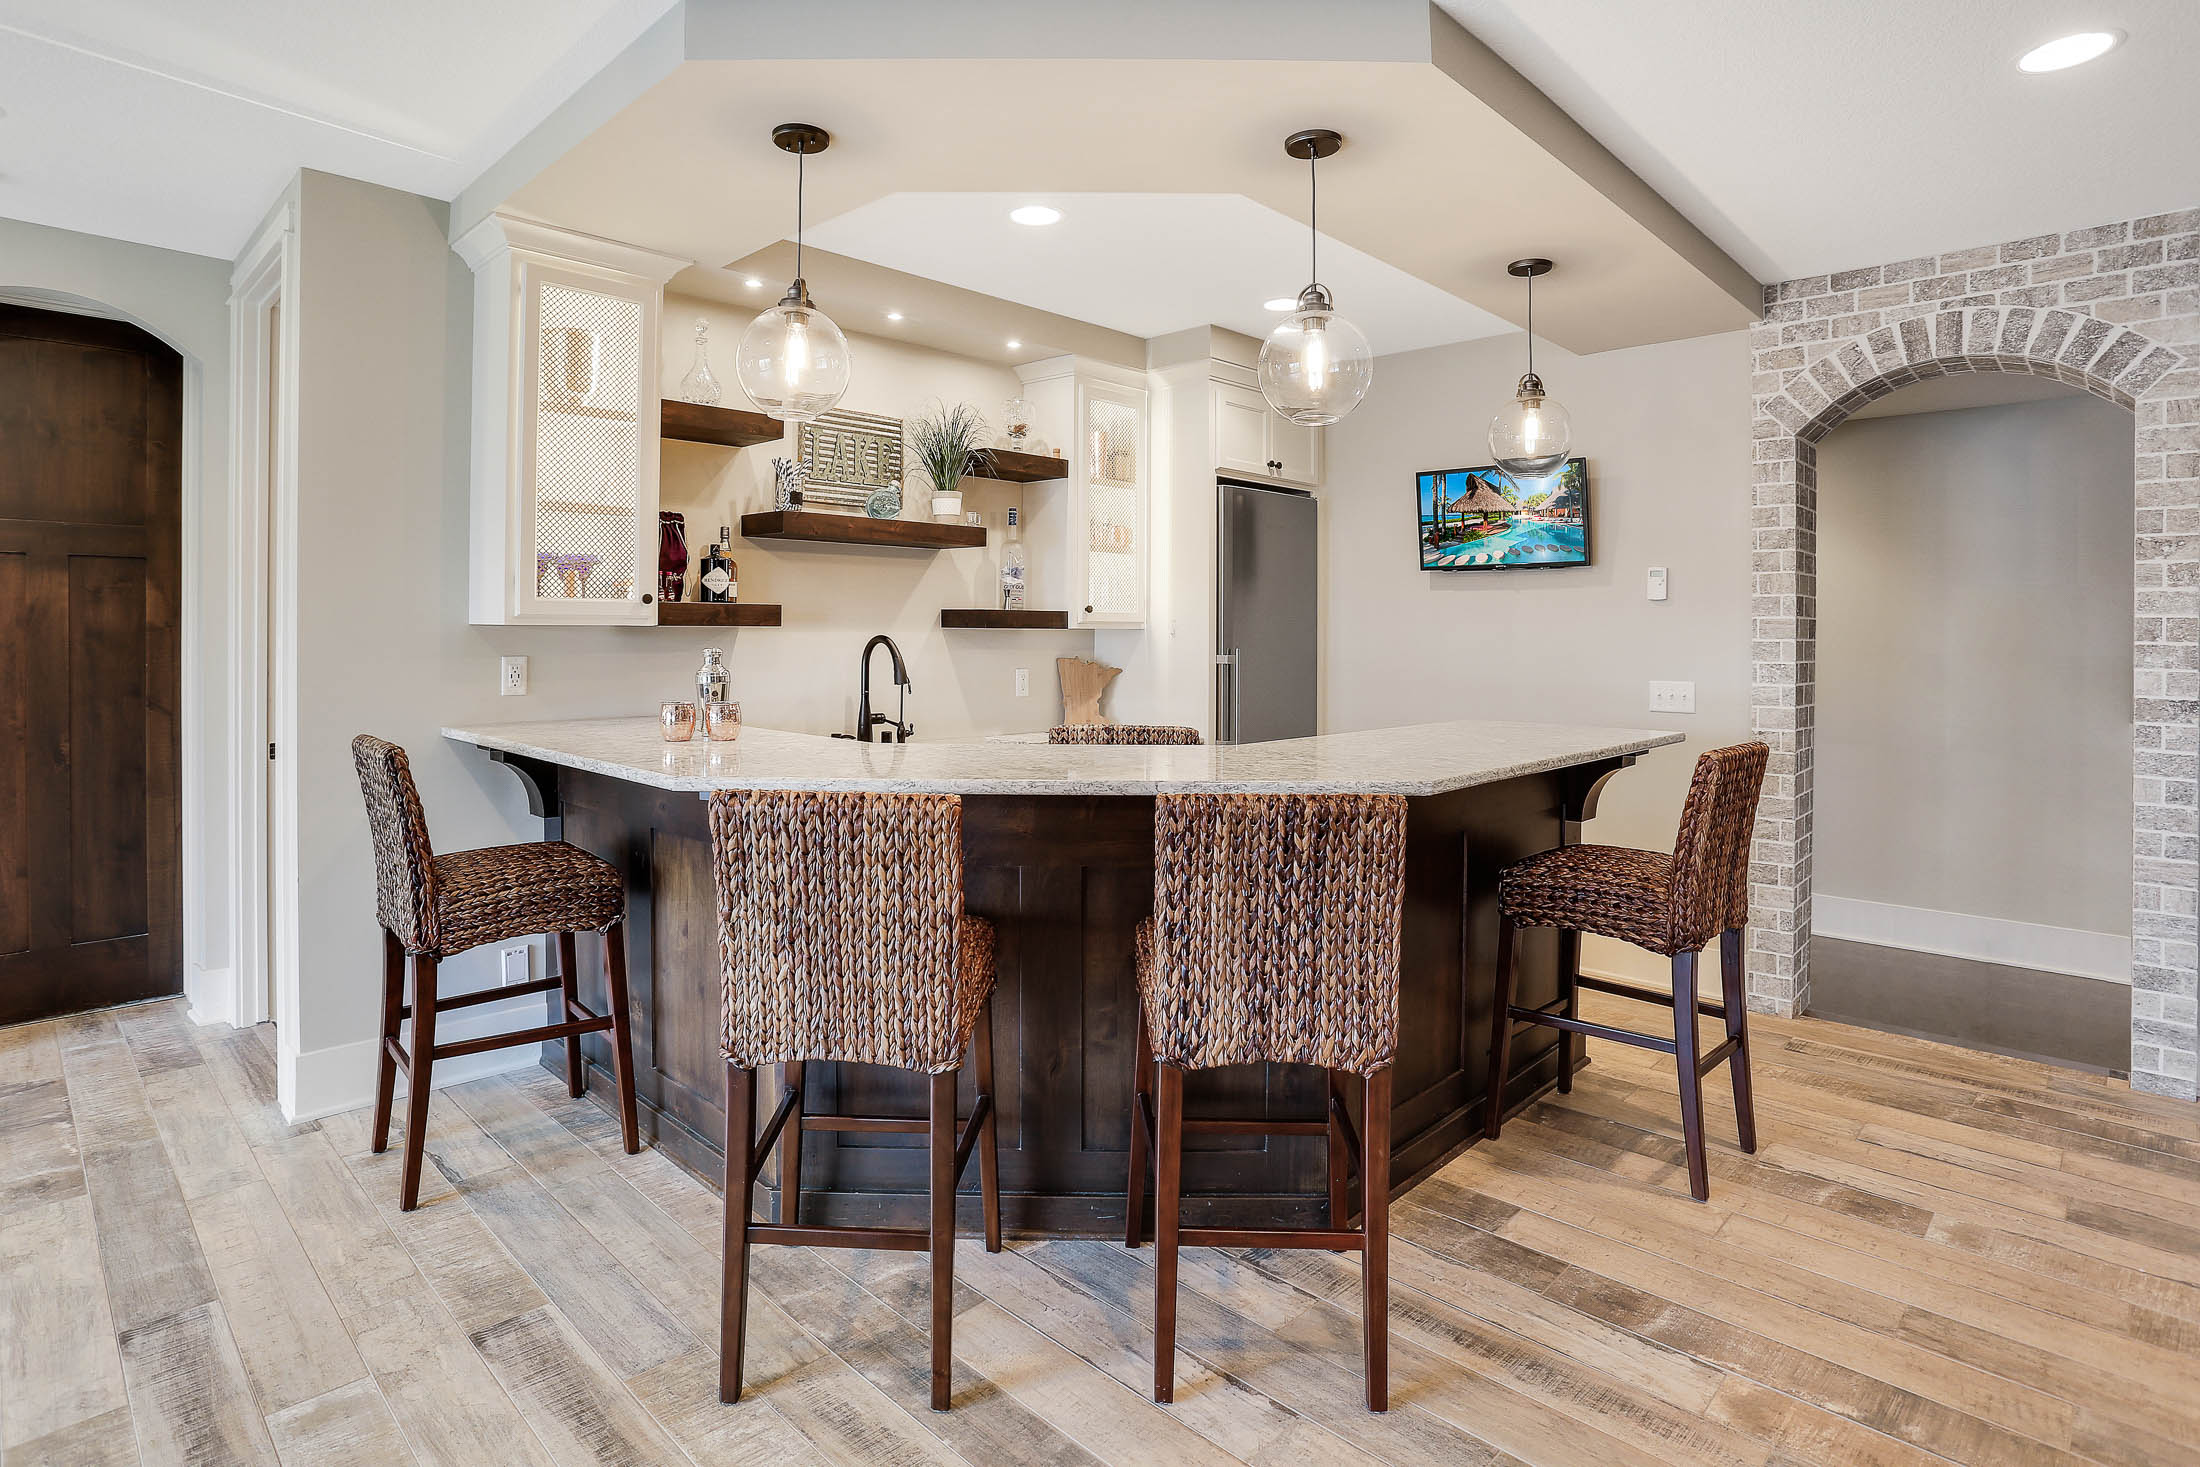 Complete wet-bar with angled island